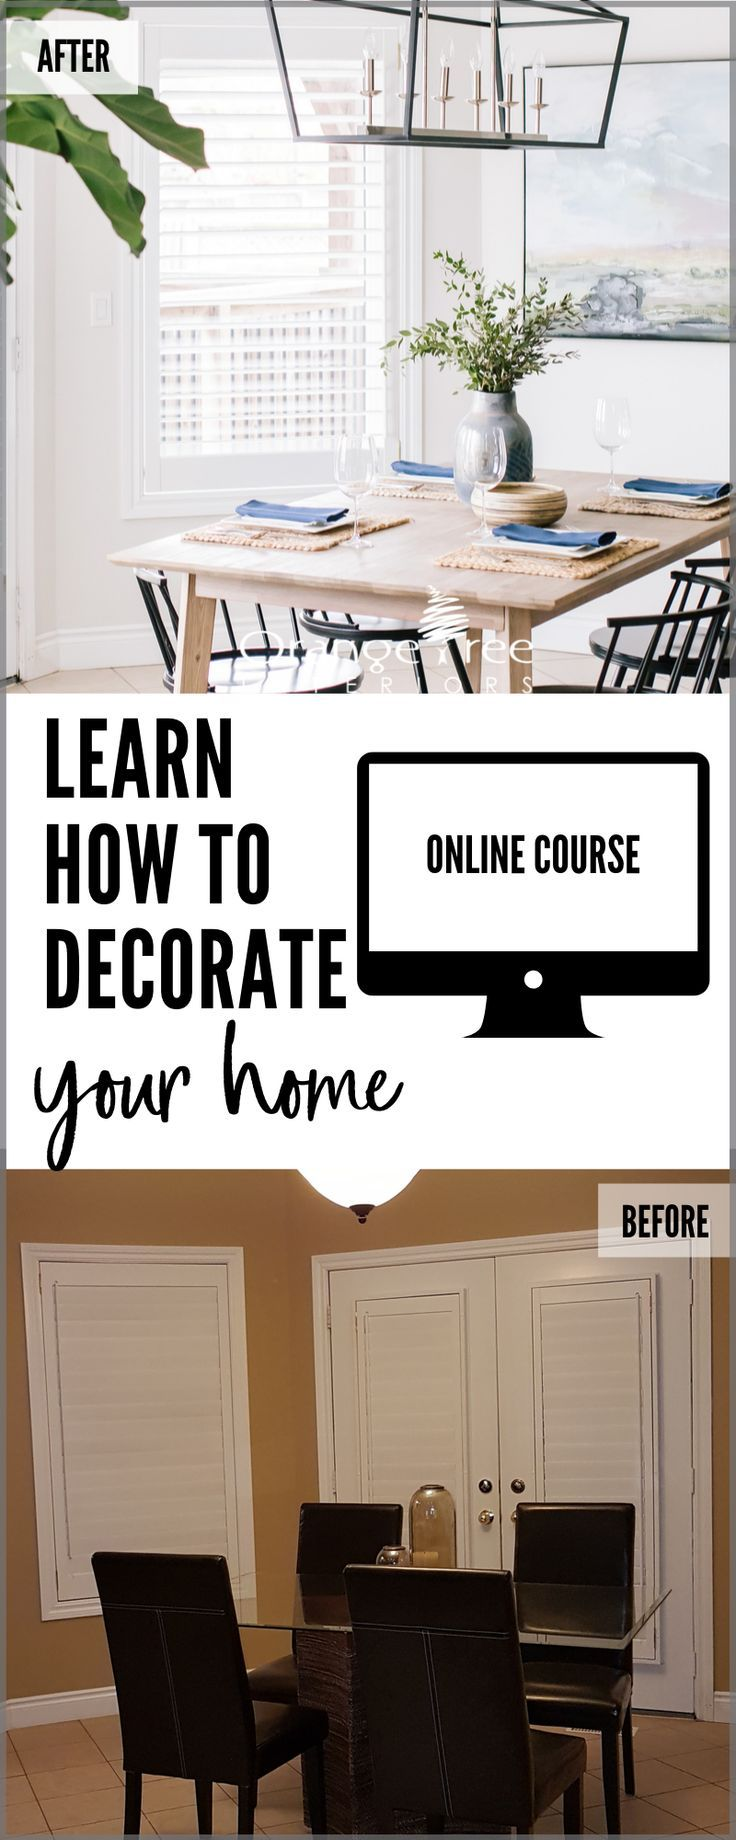 Learn How To Transform Your Home From Meh To Wow With This Self